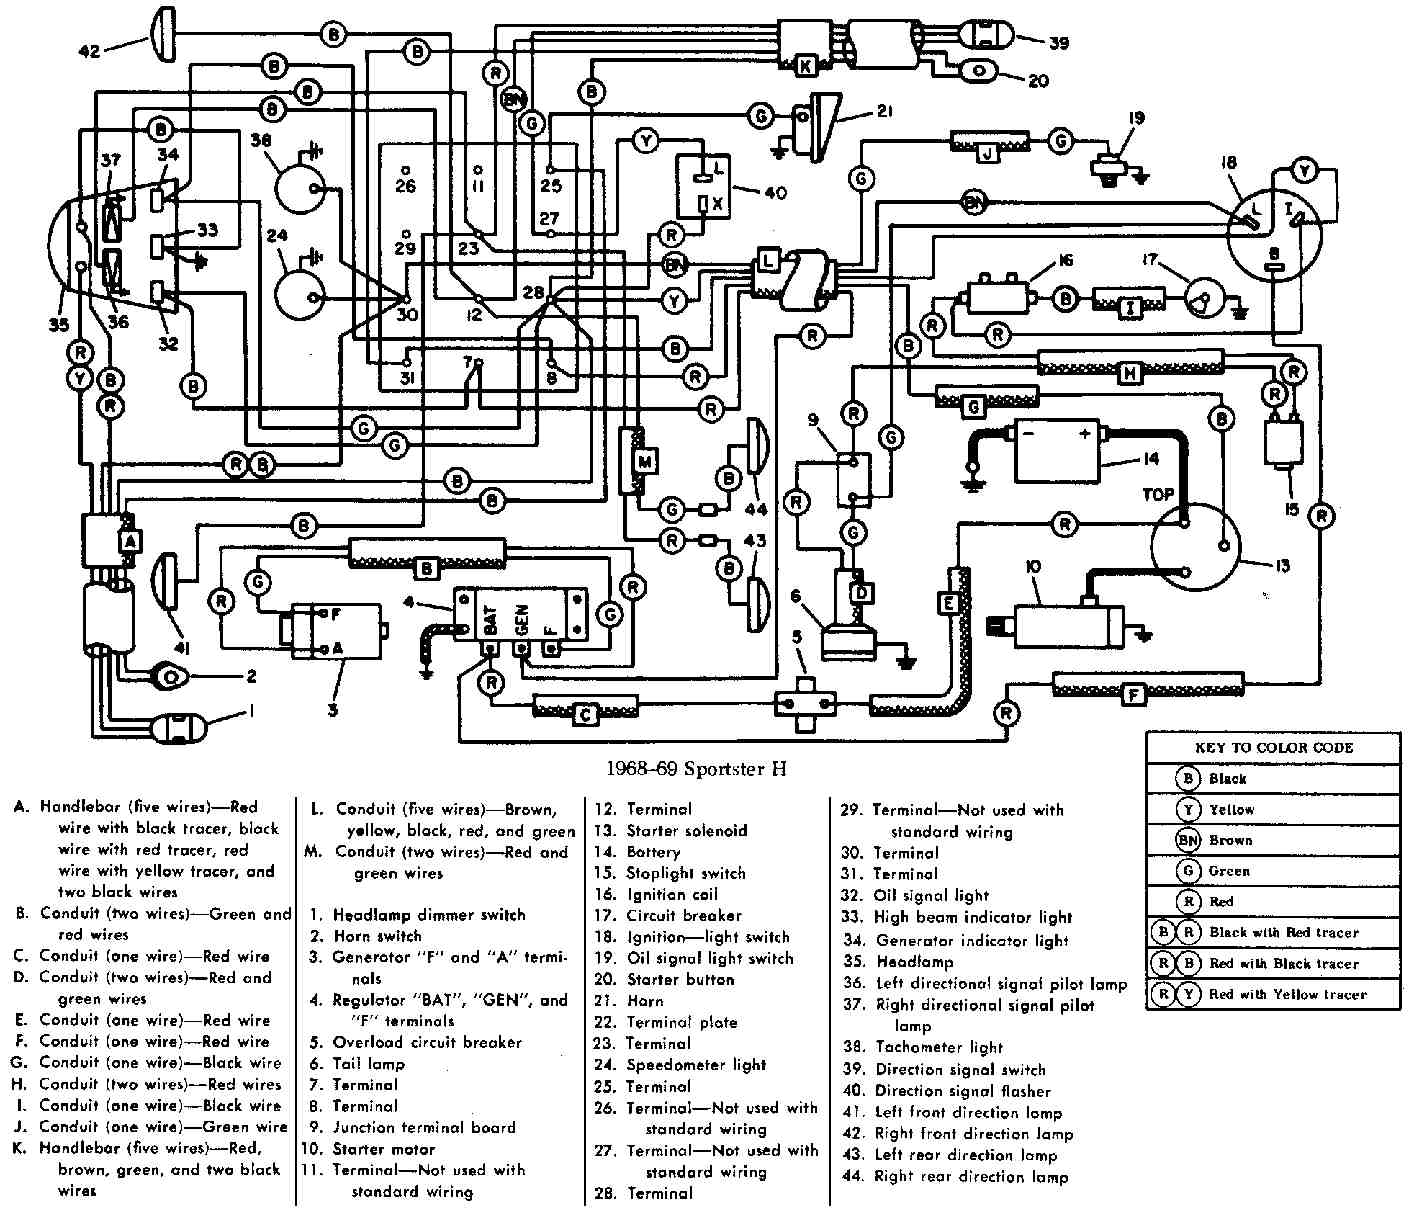 Precision Fuel Pump Wiring Diagram Ford Ranger Fuel furthermore 291235111349 likewise Here Is An Ex le Of 2003 Ford F150 Wiring Diagram in addition 2000 Ford E250 Cargo Van Fuse Panel Diagram further 2000 F150 Fuse Box Layout. on 2000 ford f150 wiring diagram free